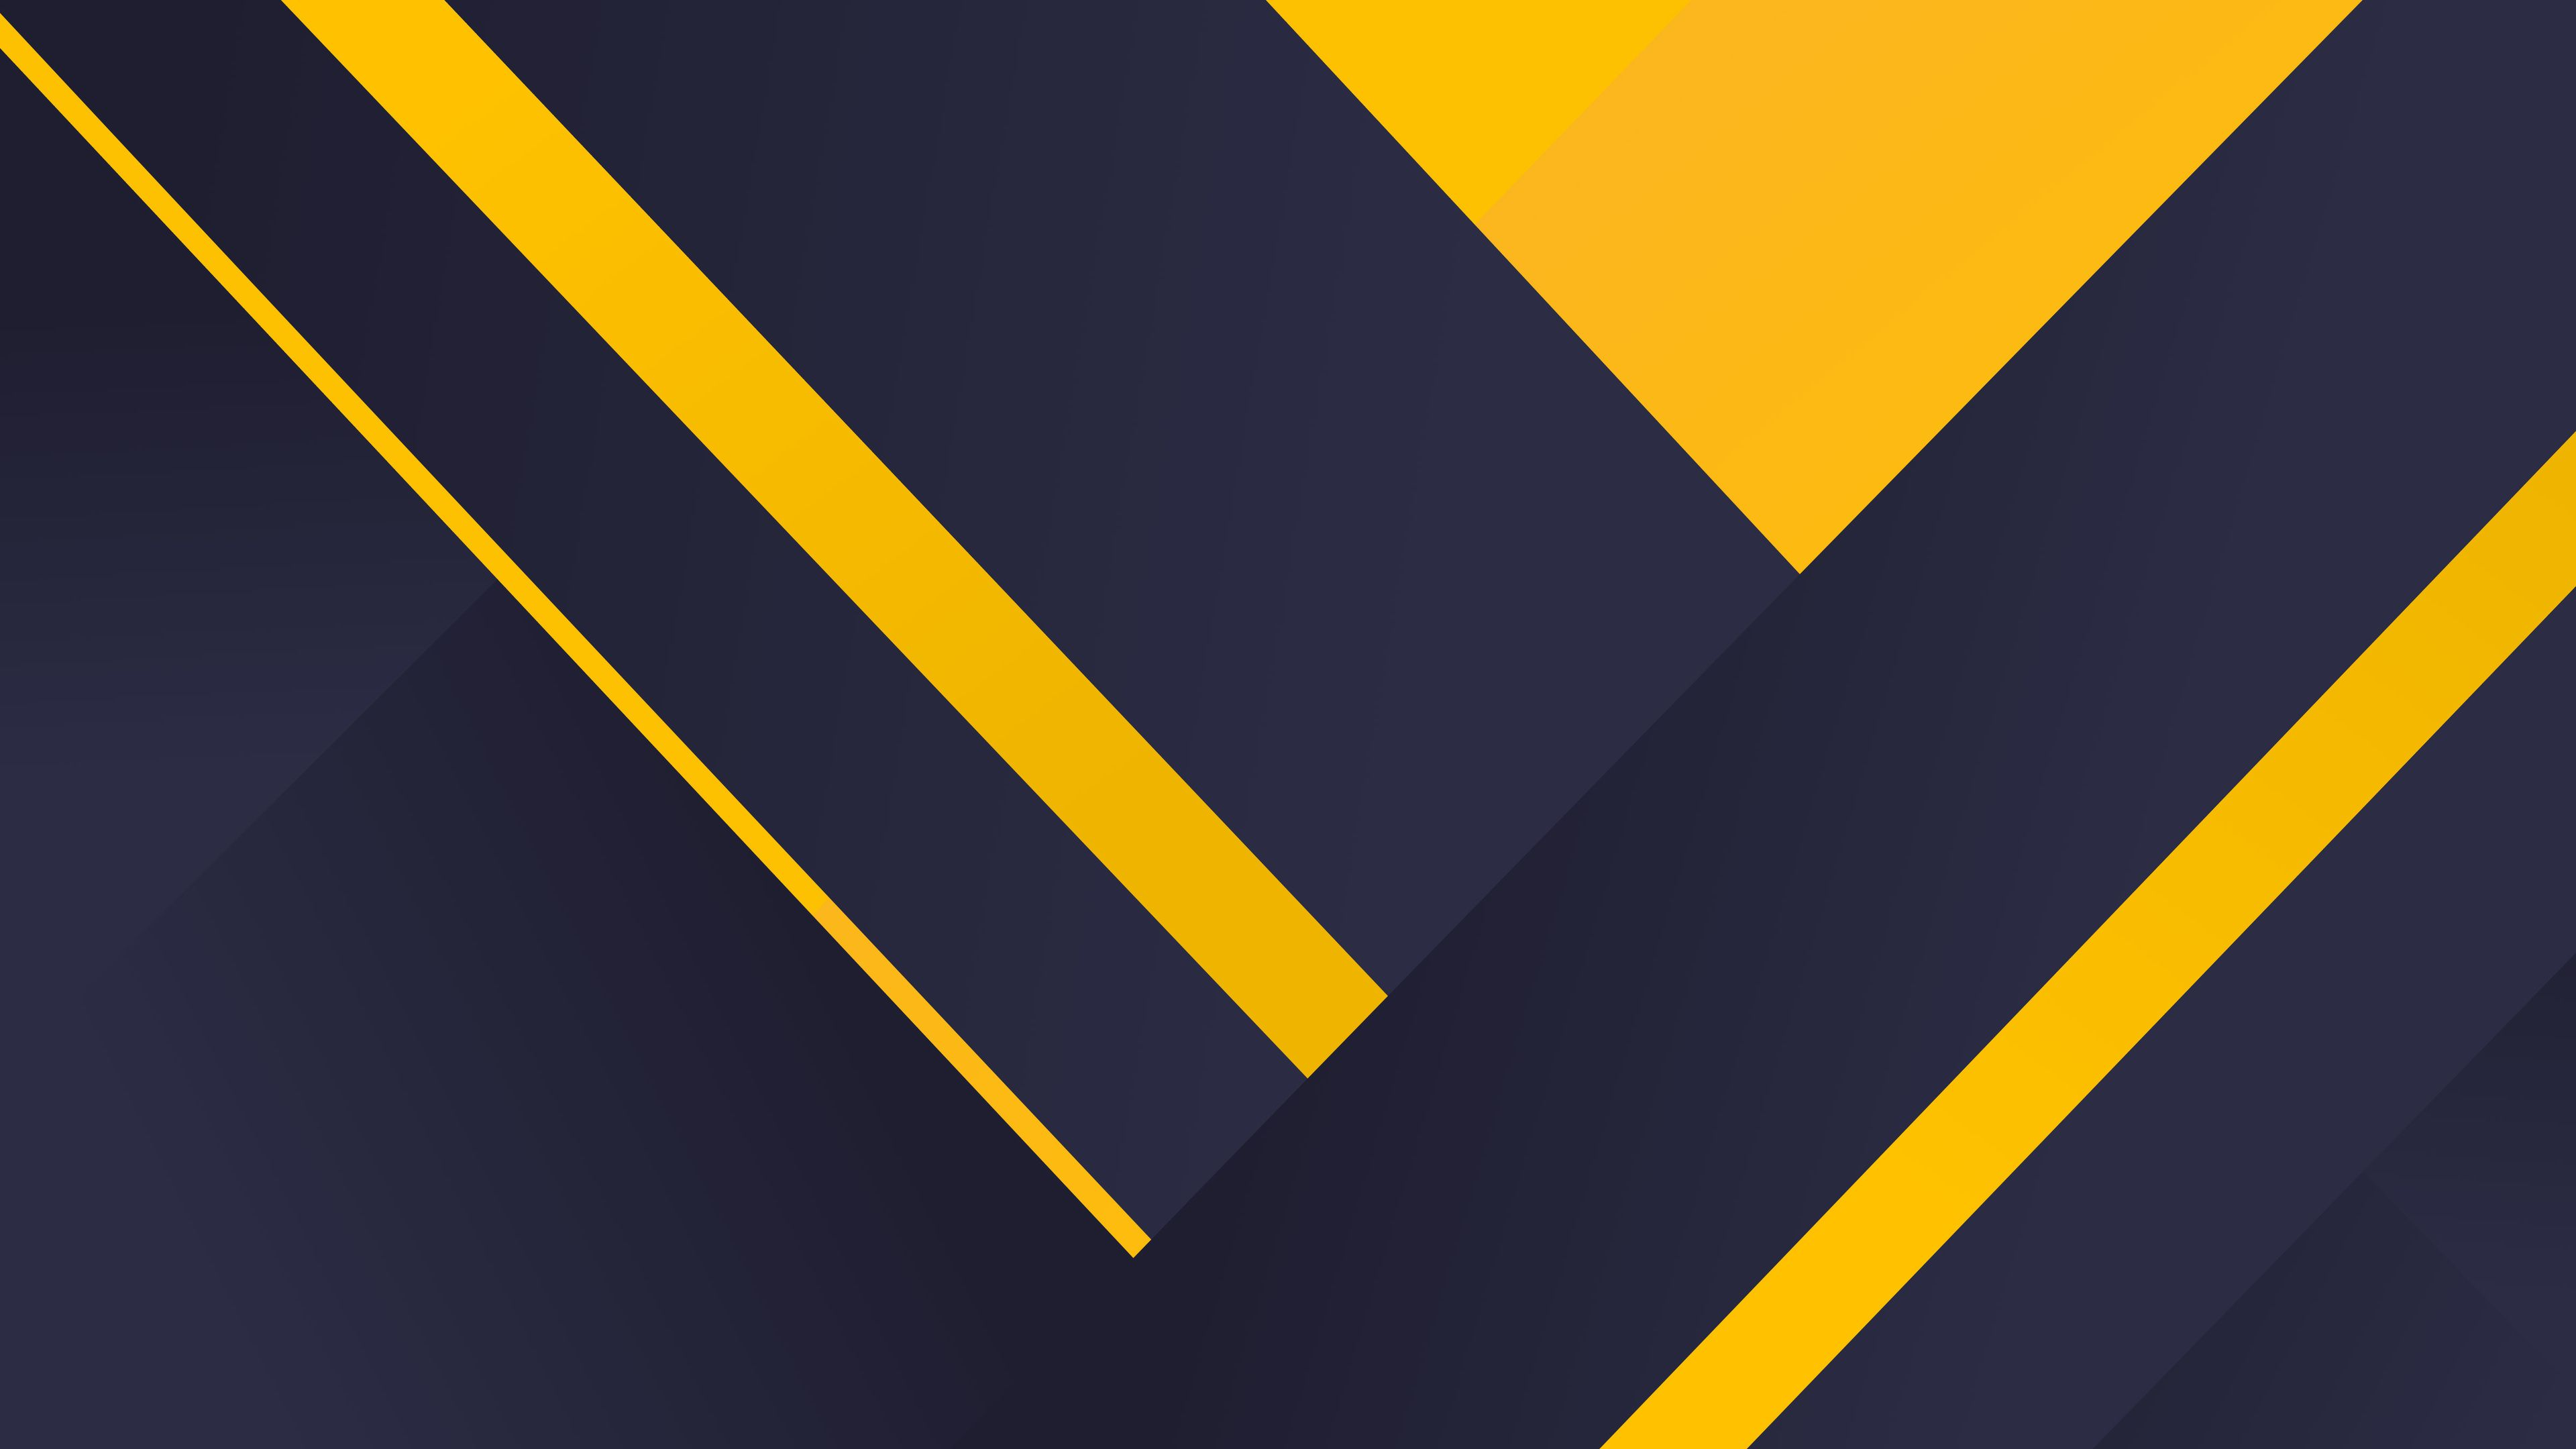 Geometric Material Yellow Blue 4k Yellow Wallpapers Material Wallpapers Hd Wallpapers Geometry Wall Geometric Background Dark Backgrounds Abstract Wallpaper